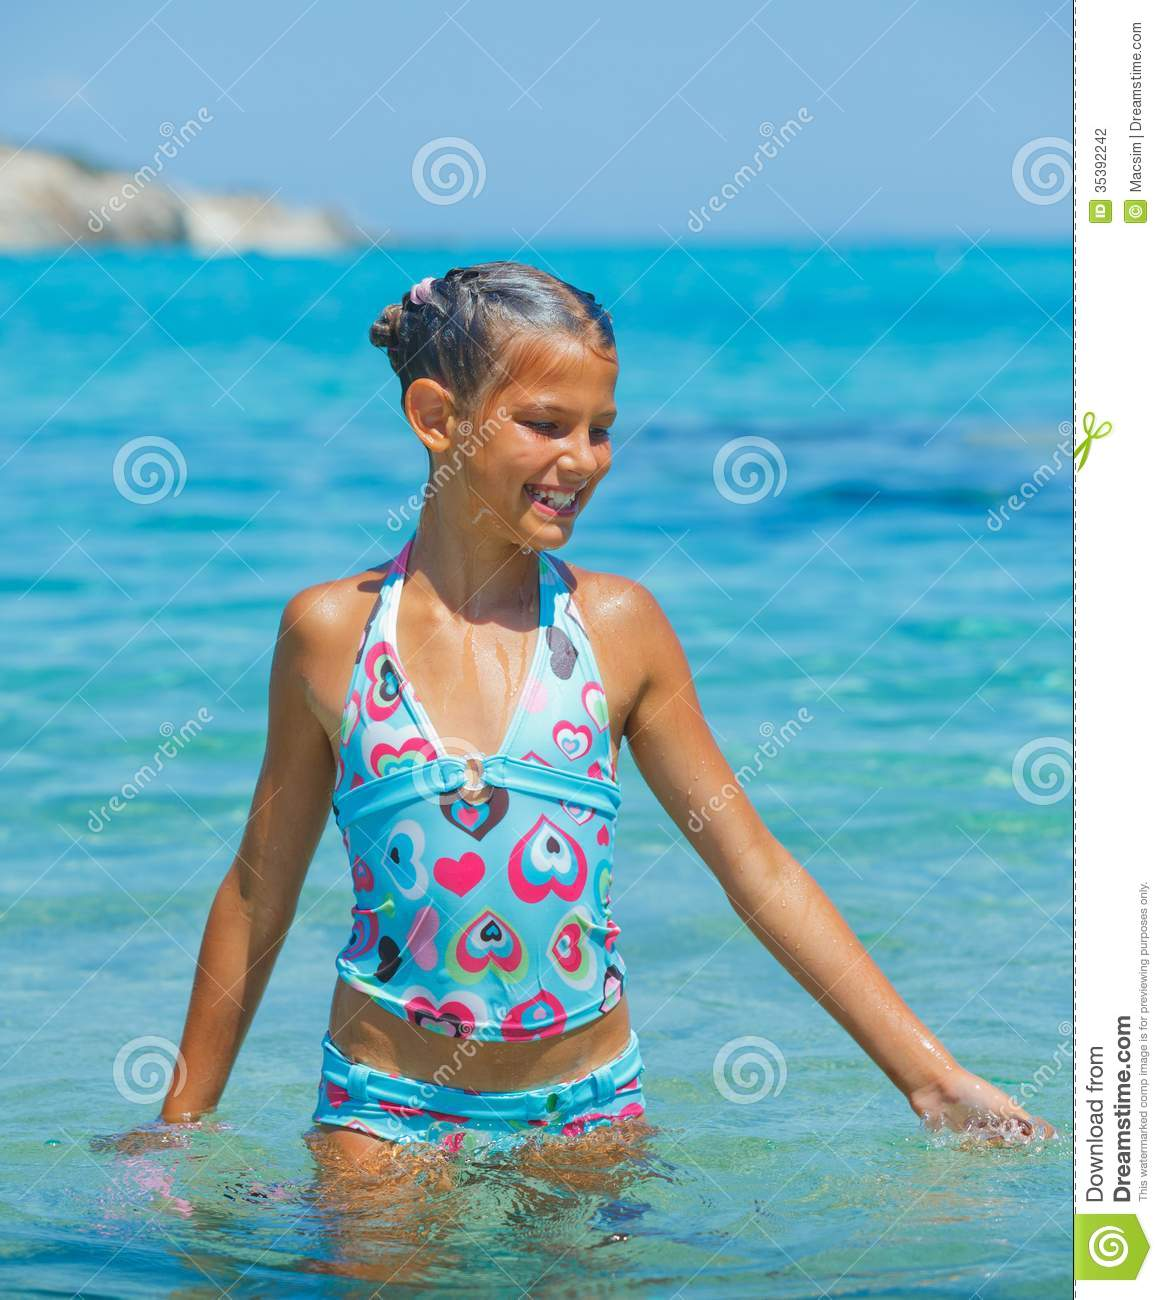 Swimming Cute Girl Stock Photography - Image: 35392242: www.dreamstime.com/stock-photography-swimming-cute-girl-portrait...